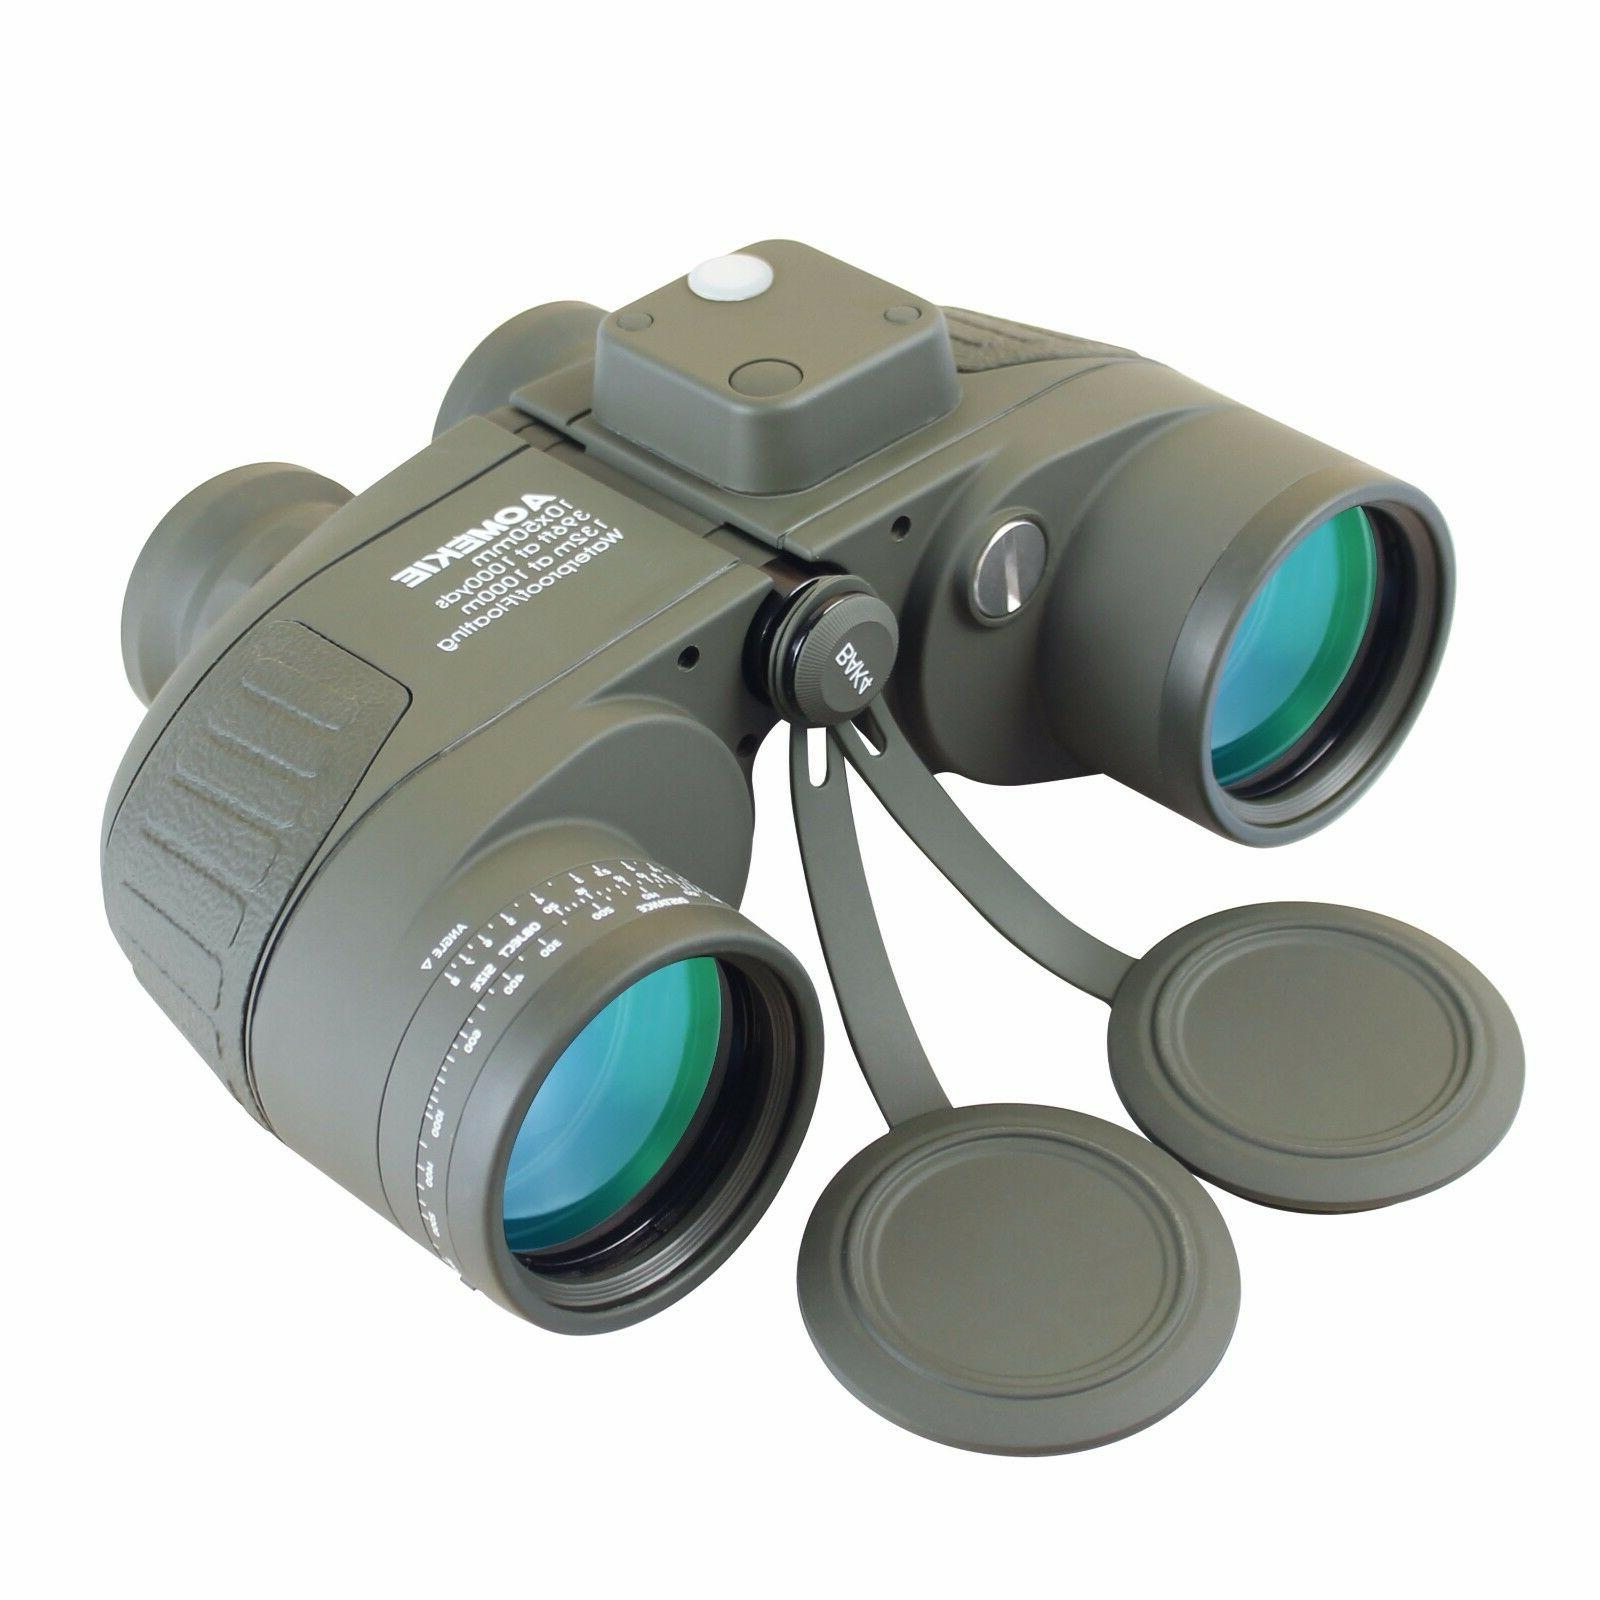 BAK4 10X50 LLL Night Vison Hunting Binoculars Waterproof W/